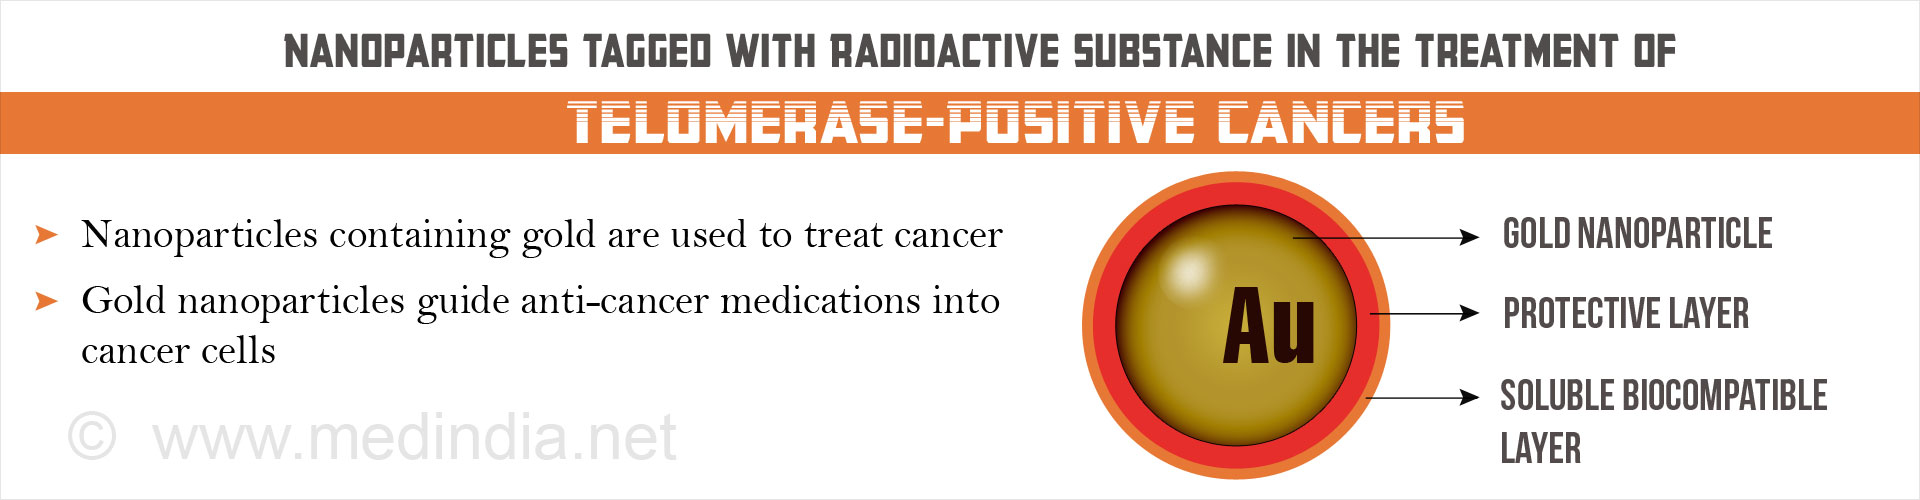 Gold Nanoparticles Tagged With Radioactive Substance in the Treatment of Cancer